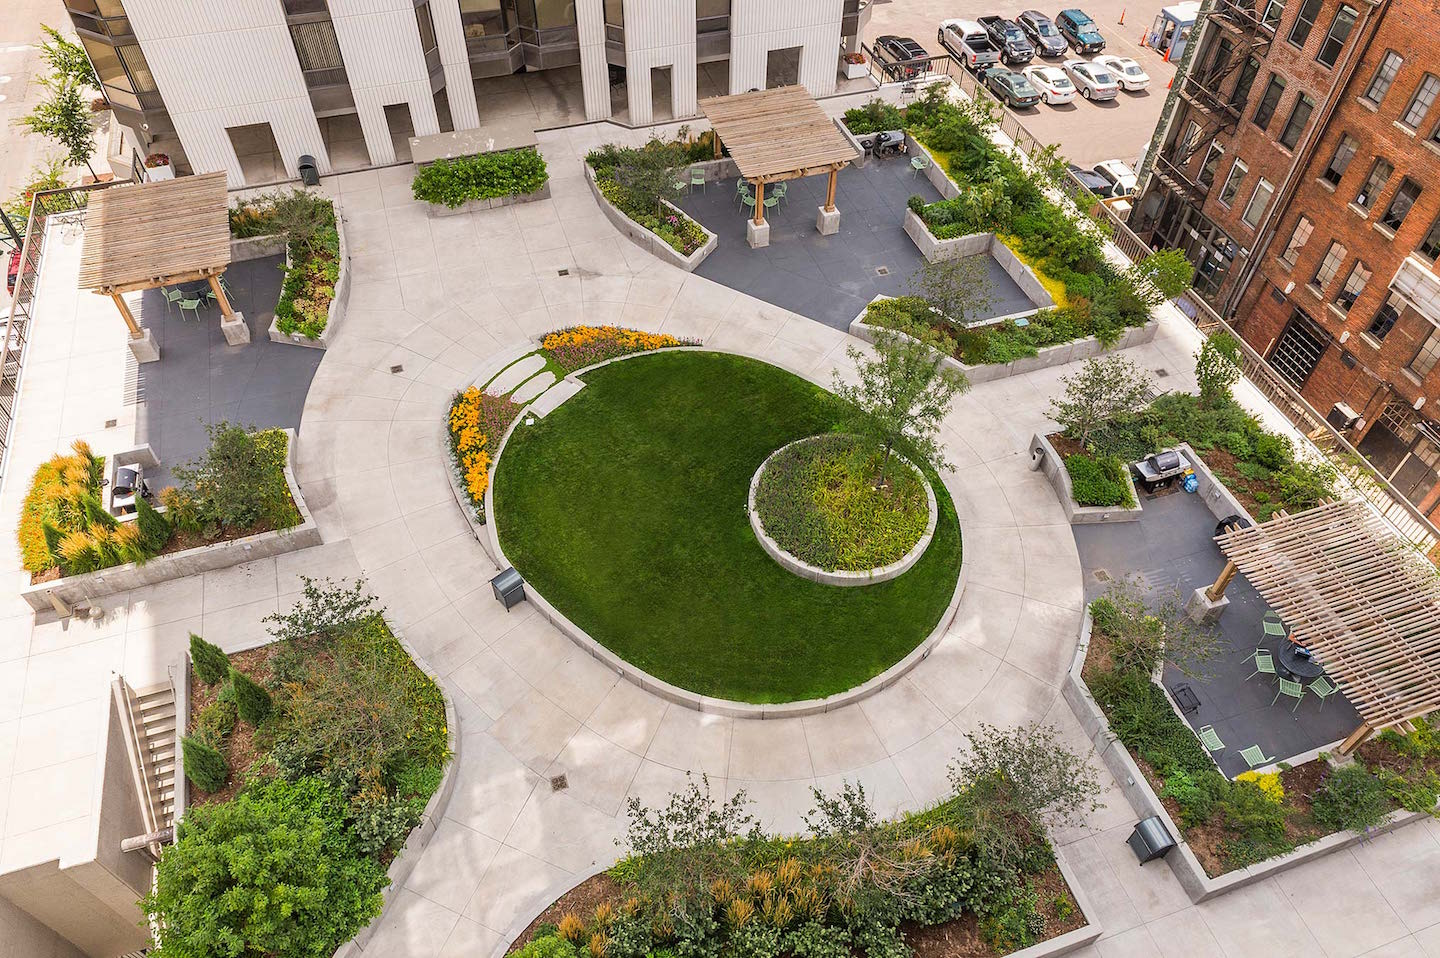 Barclay Towers The Garden Plaza Lime Green Design Lime